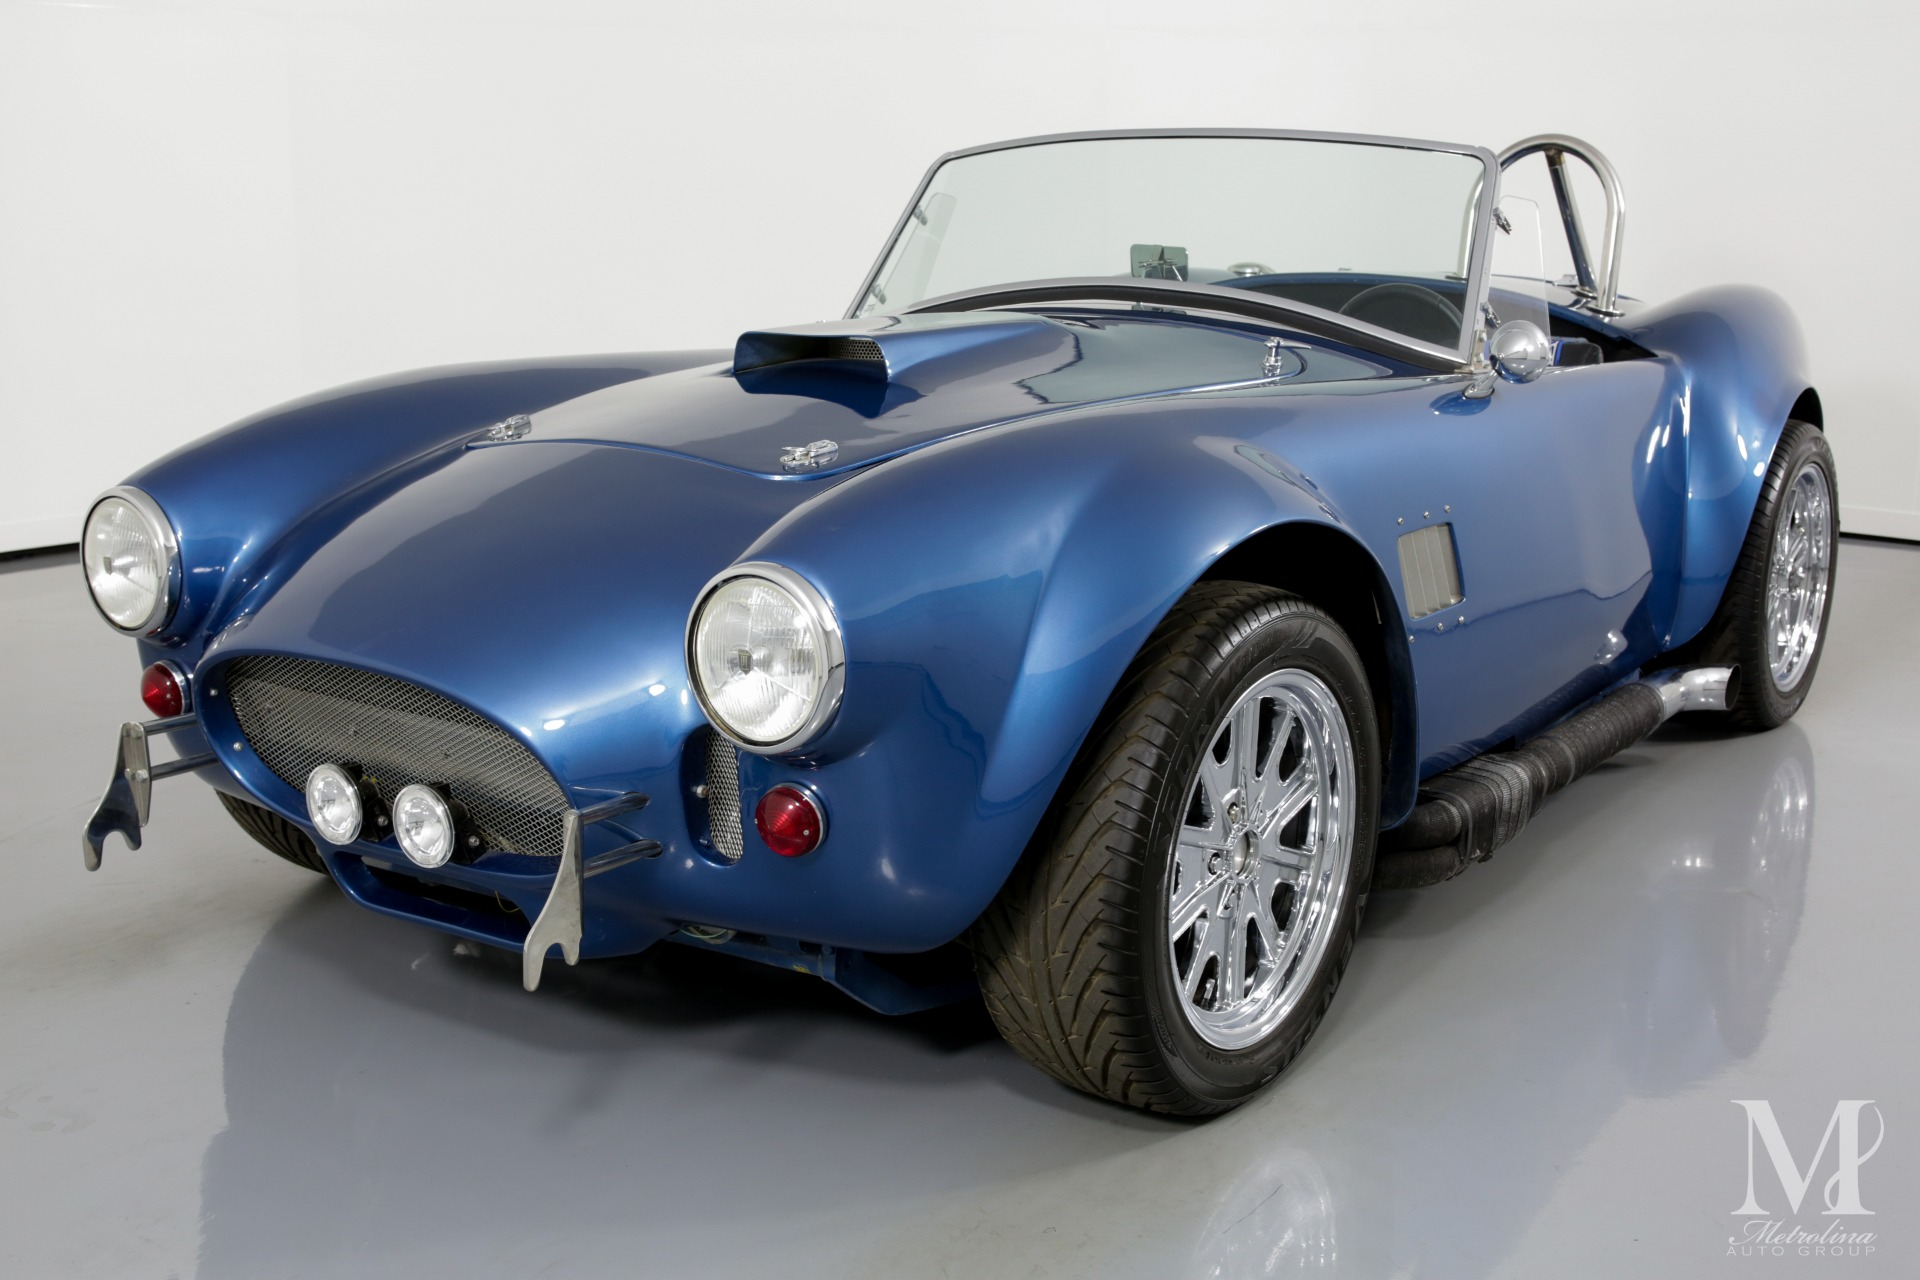 Used 1965 Shelby Cobra KIT CAR for sale Sold at Metrolina Auto Group in Charlotte NC 28217 - 4